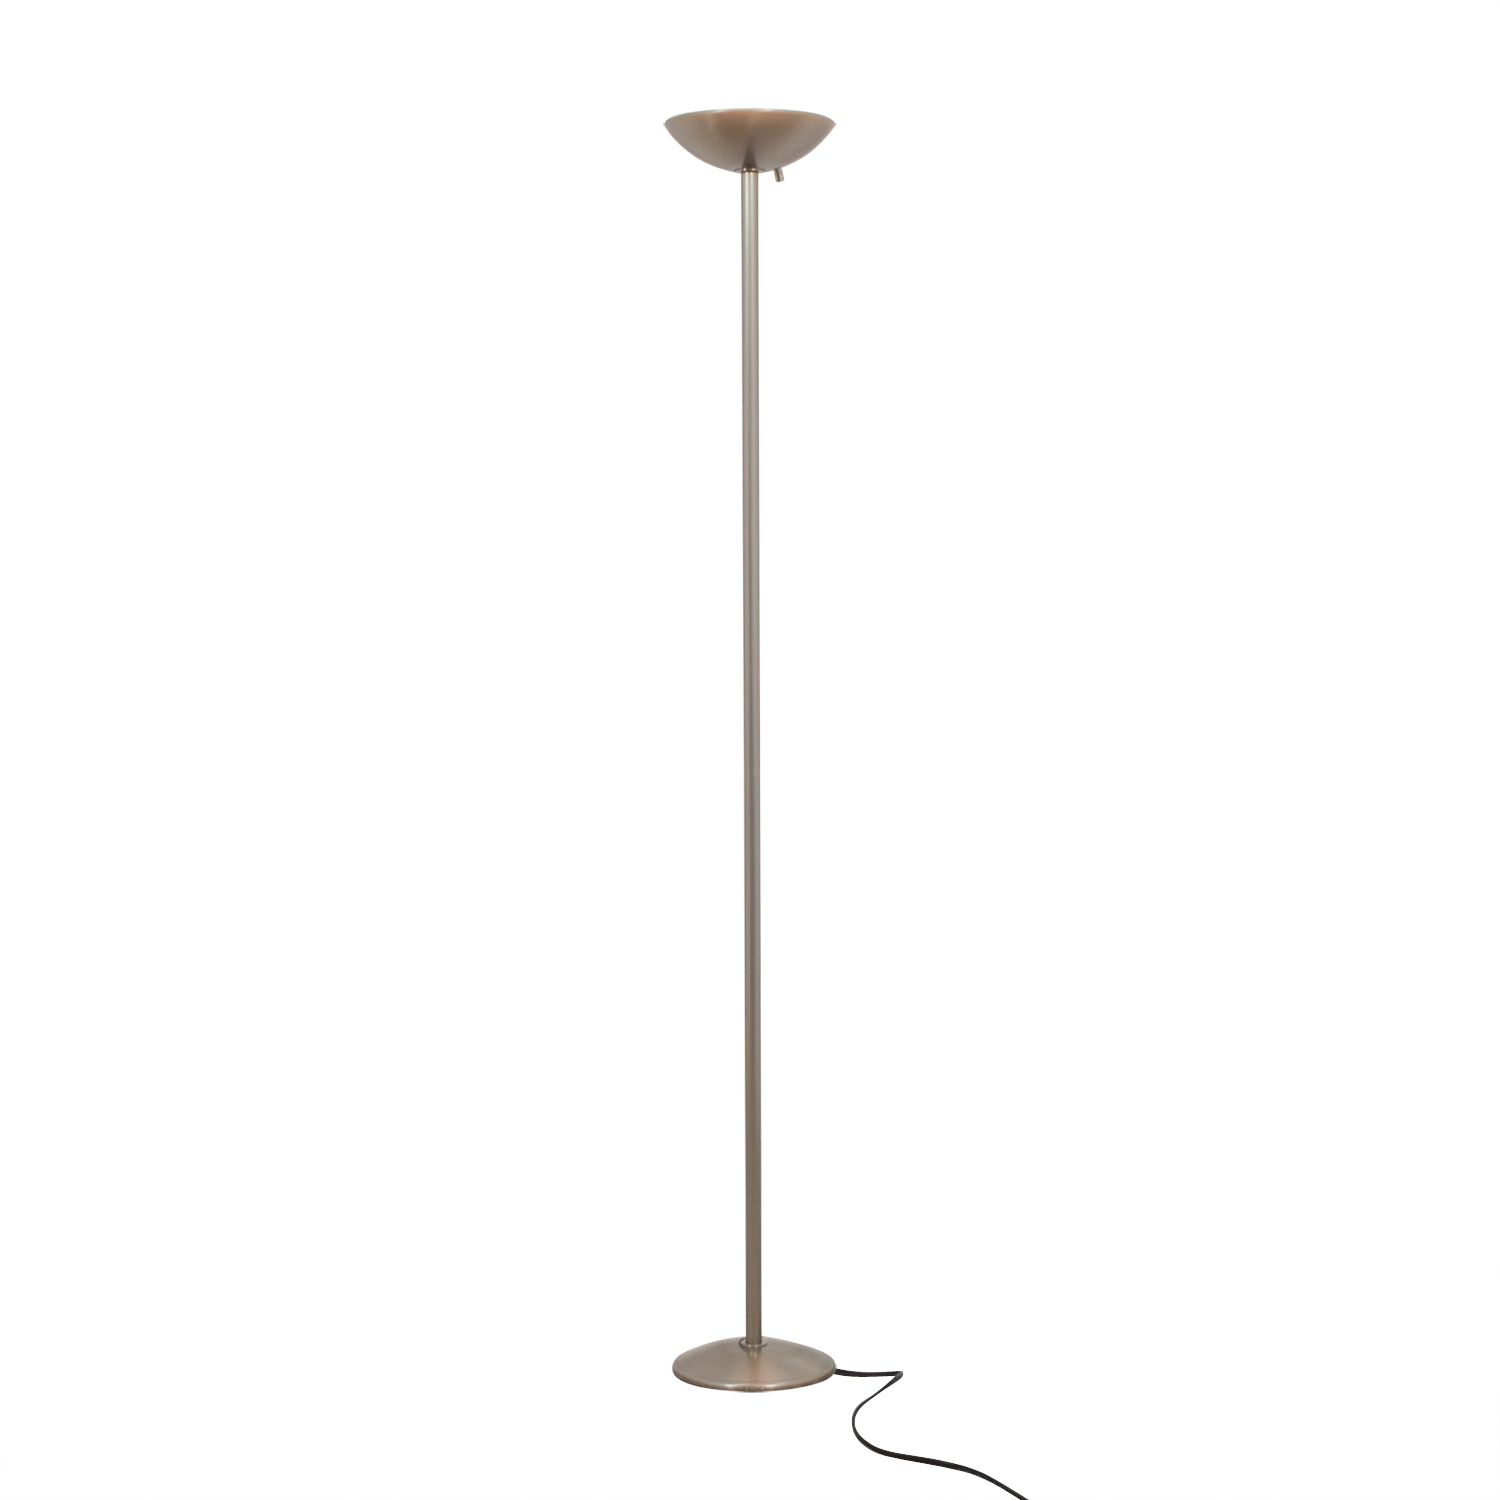 shop Ligne Roset Ligne Roset Brushed Silver Floor Lamp online